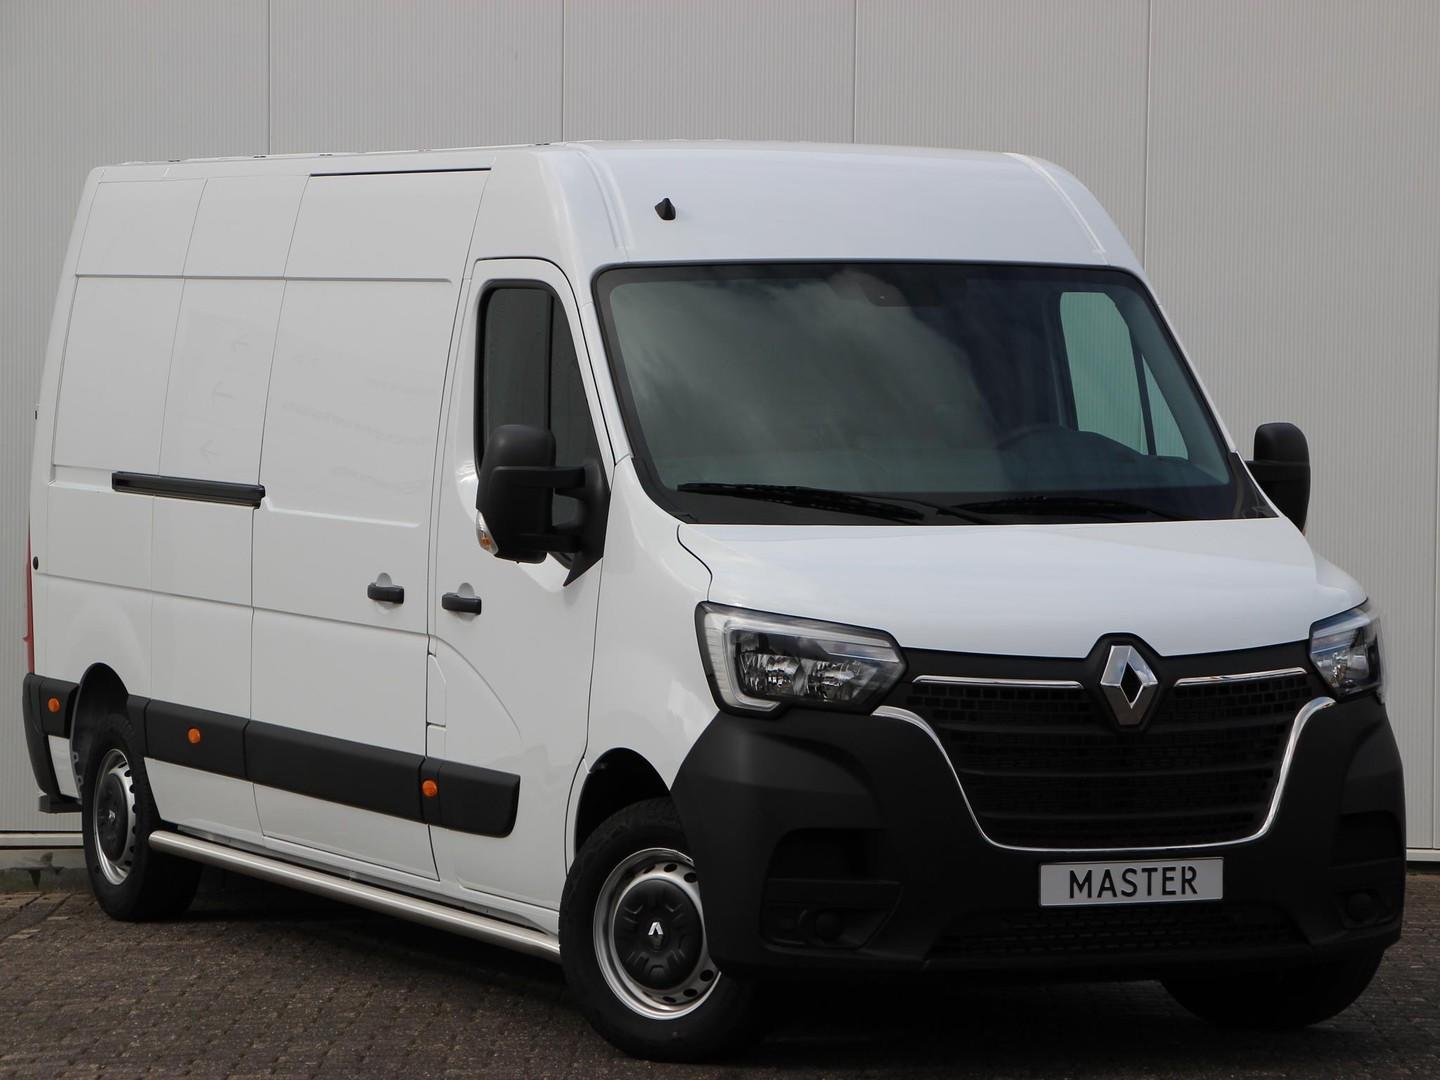 Renault Master T35 2.3 dci 180 pk l3h2 fwd energy twinturbo